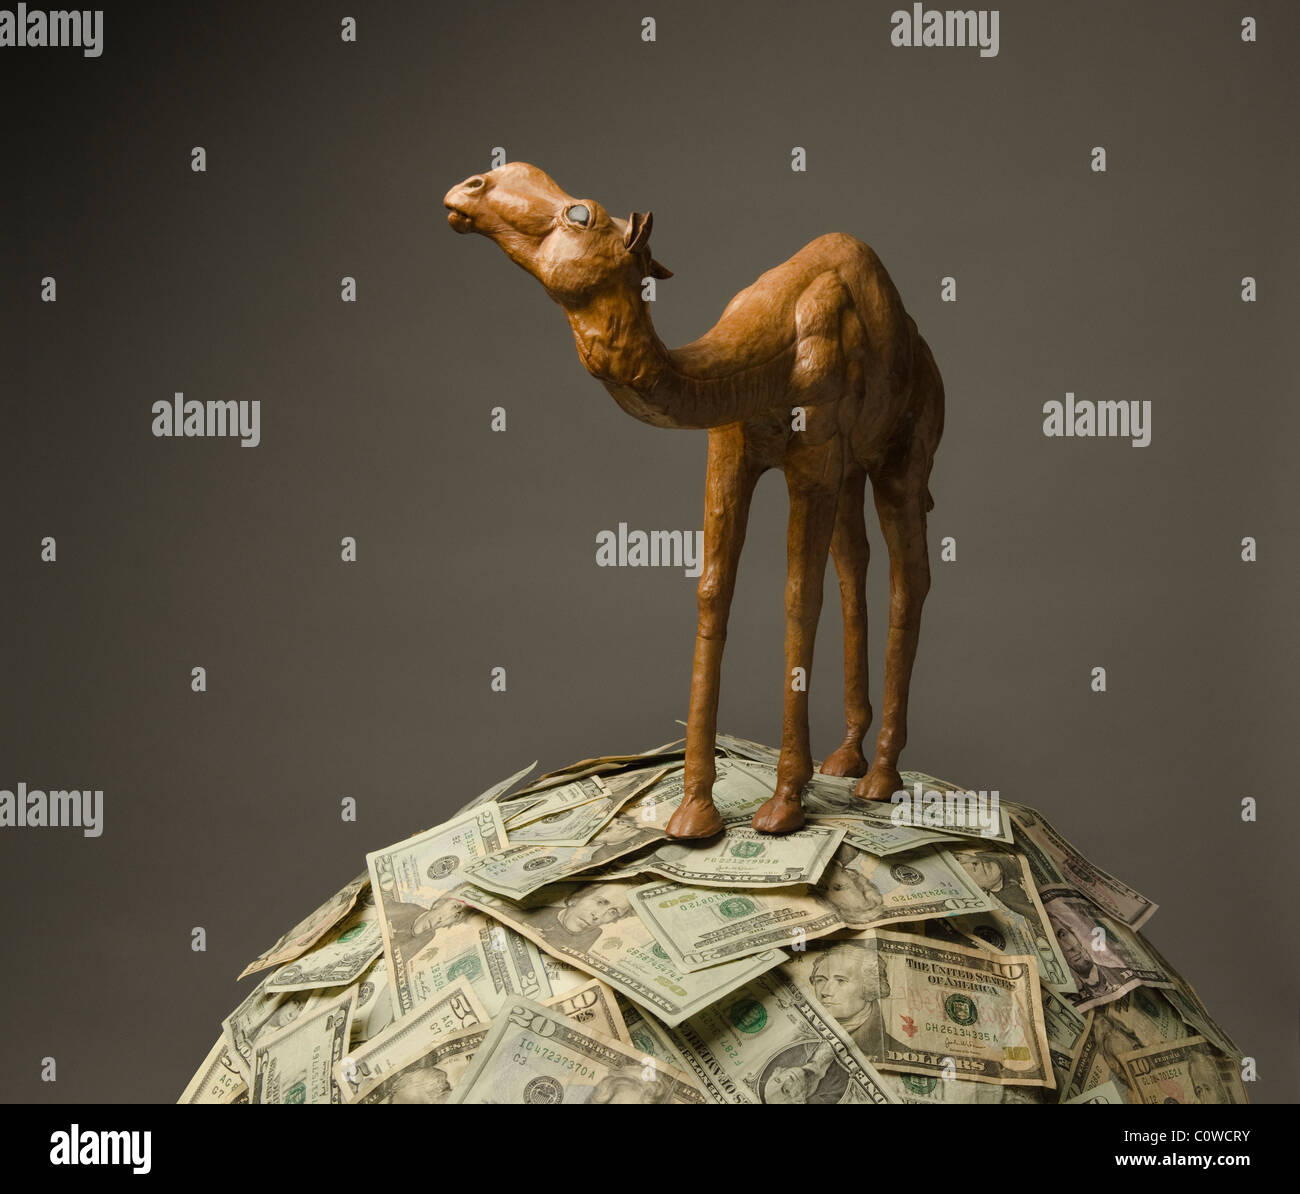 model of camel standing on mound of US paper currency - Stock Image